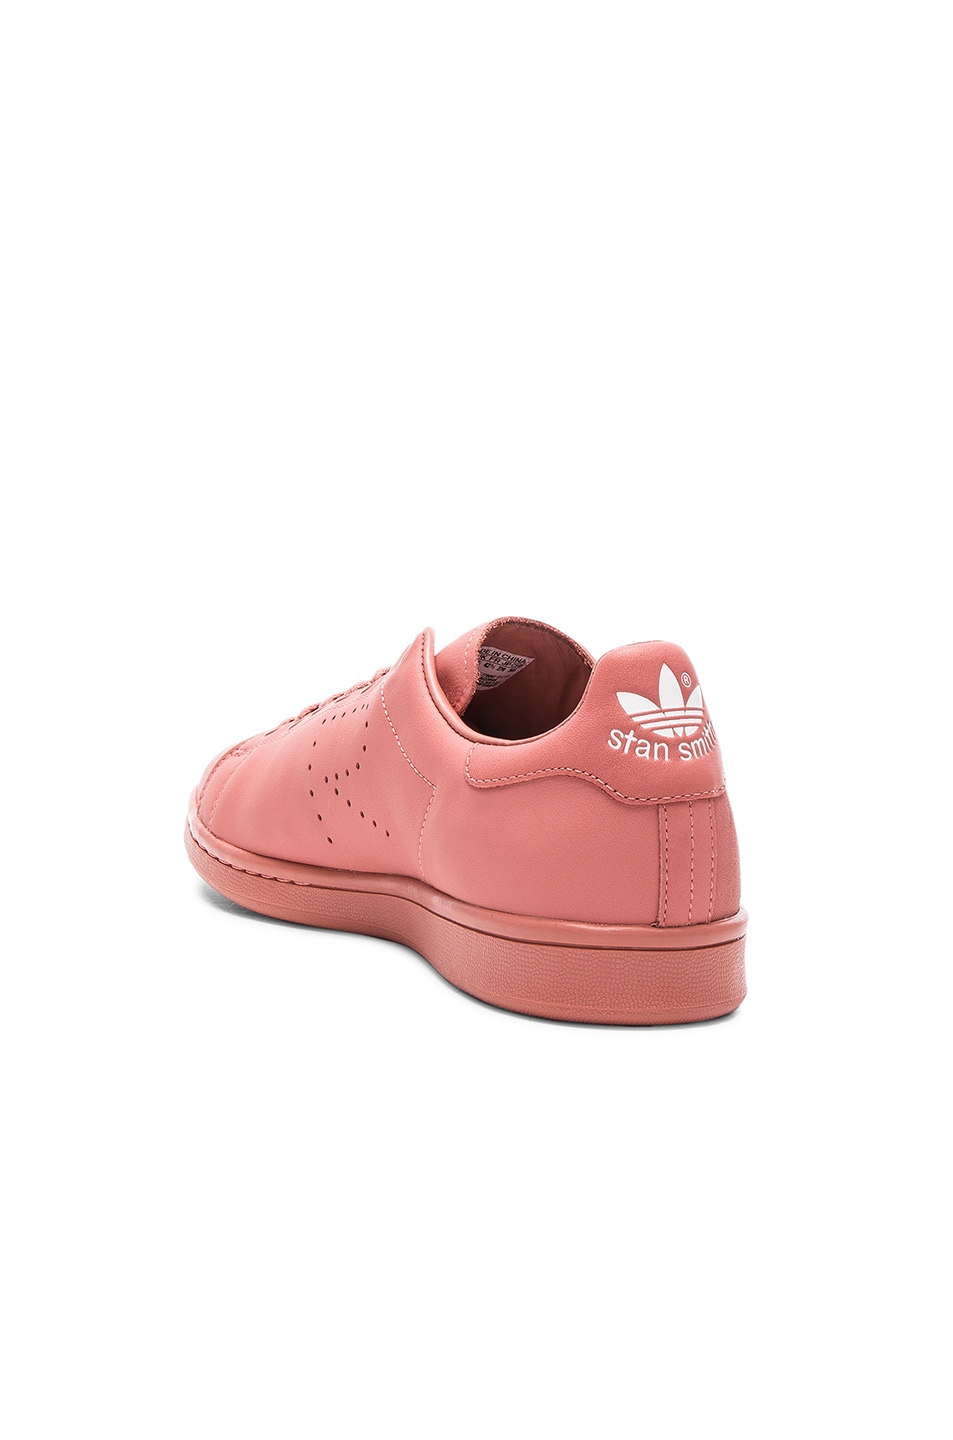 best service 694be 311a6 Image 3 of Raf Simons x Adidas Stan Smith in Ash Pink